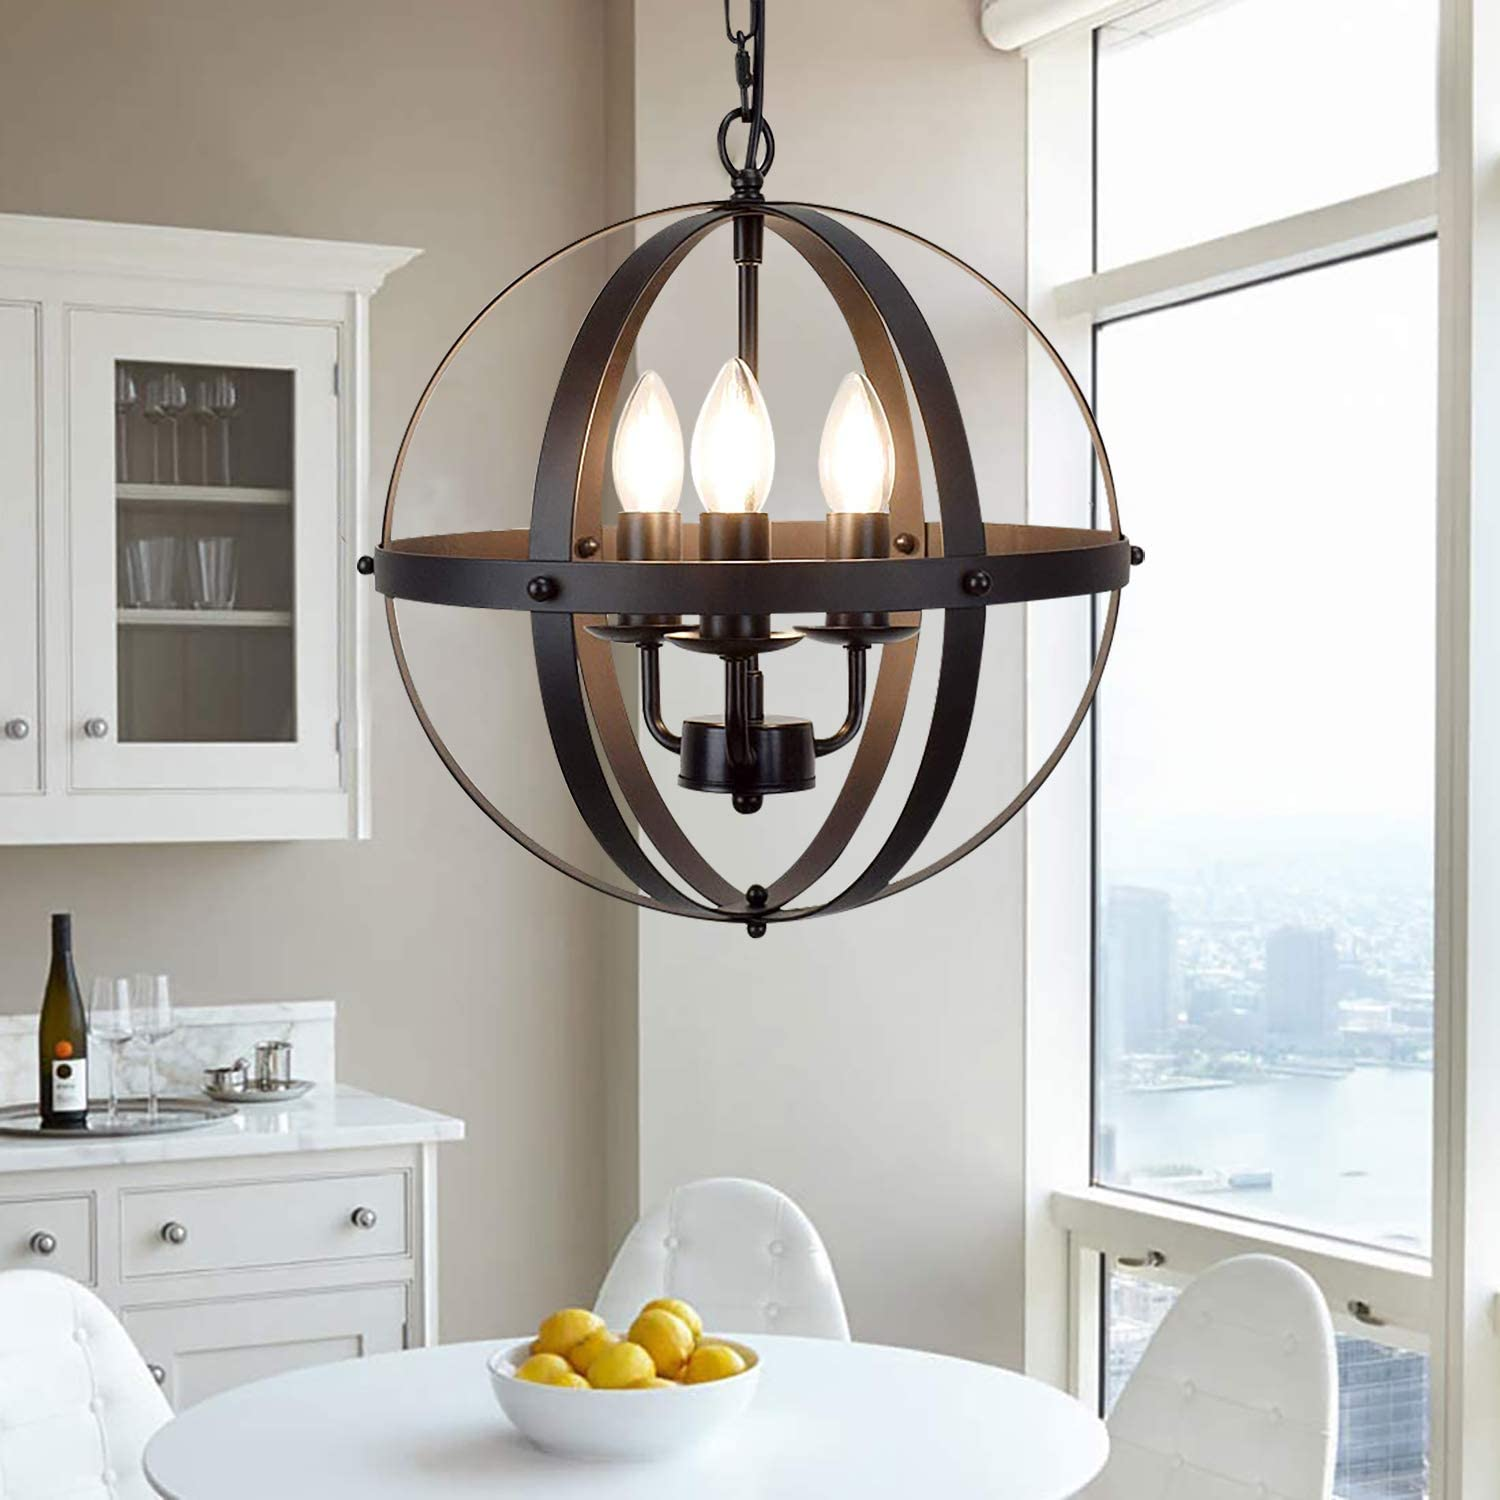 Ganeed Pendant Light, Industrial Globe Pendant Lighting, Vintage Chandelier Spherical Hanging Light, Ceiling Light Fixture for Kitchen Island Dining Table Farmhouse - -